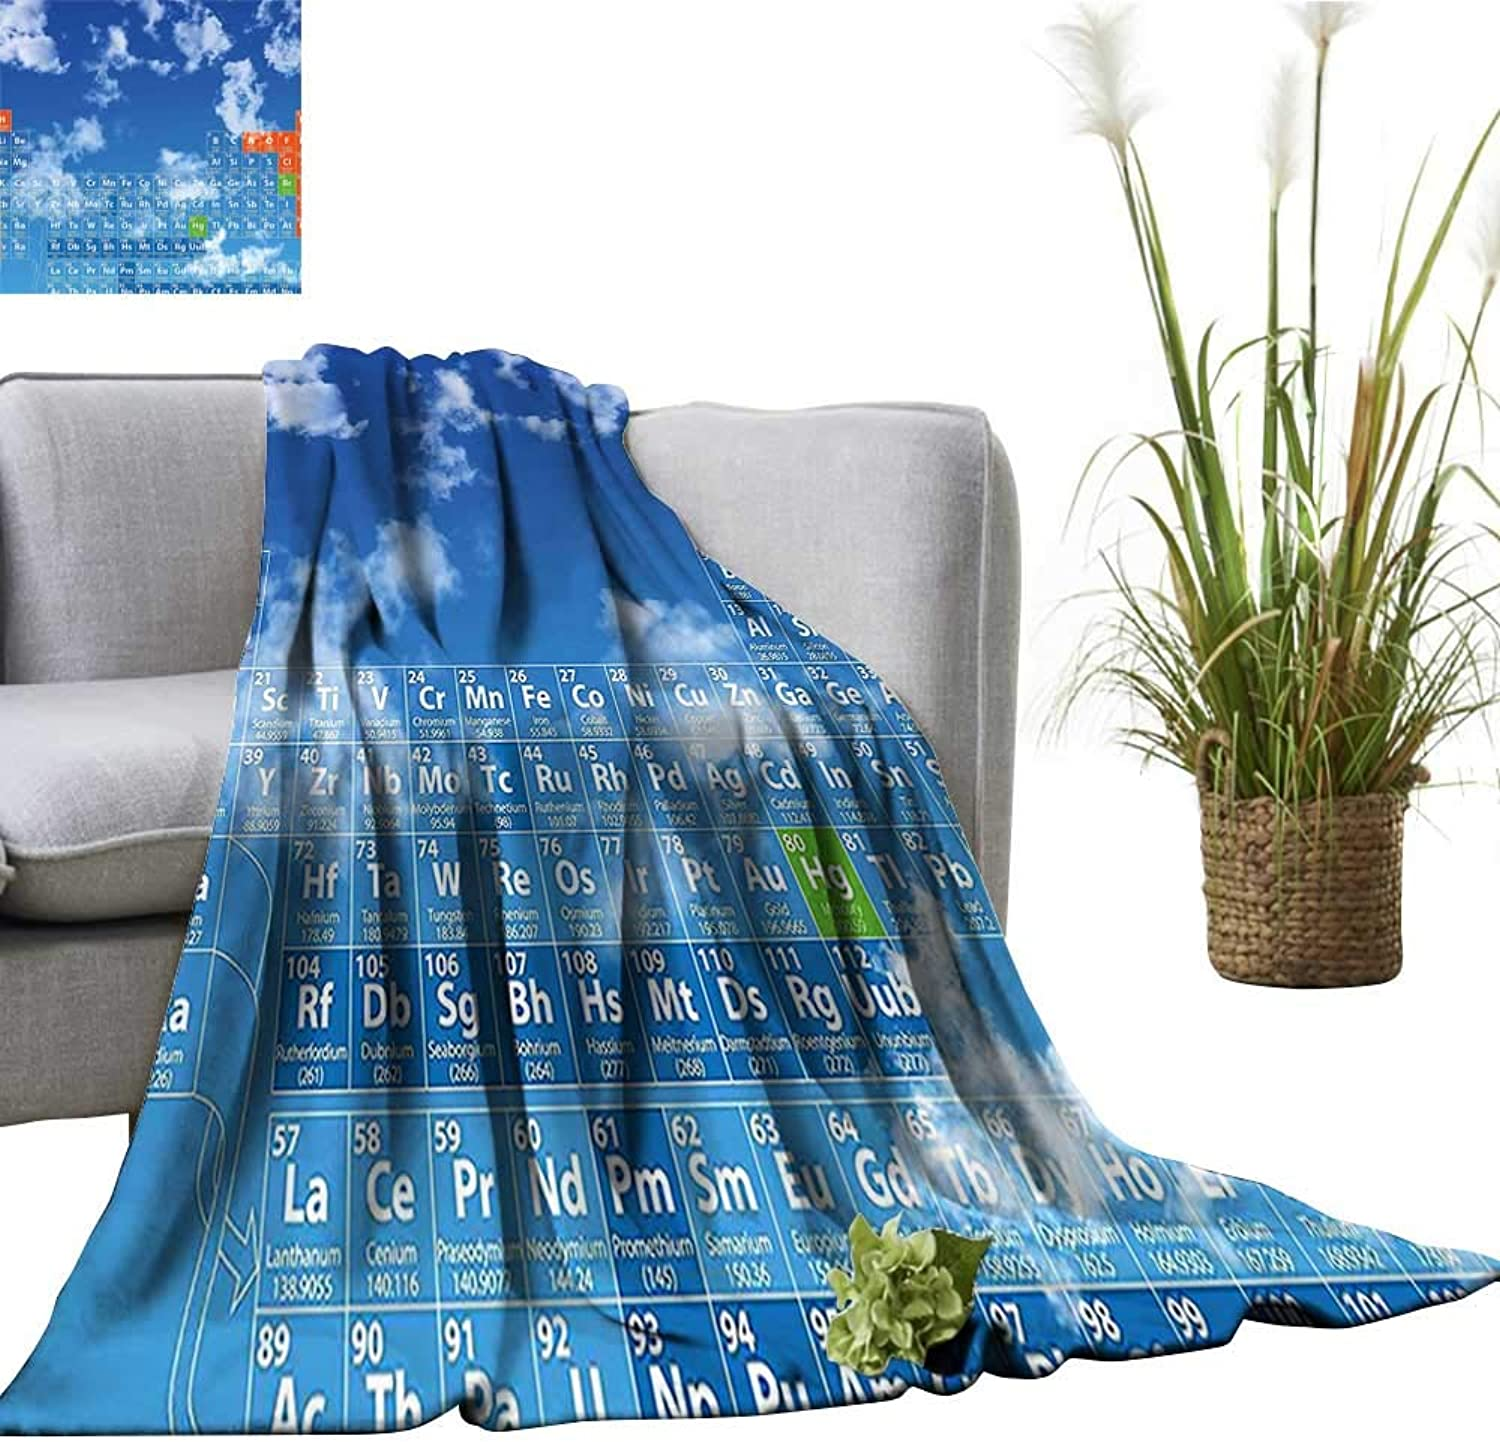 YOYI Single-Sided blanketBright Sky with Coulds and Chemistry Table for Kids Smart Student Print bluee for Bed & Couch Sofa Easy Care 60 x63